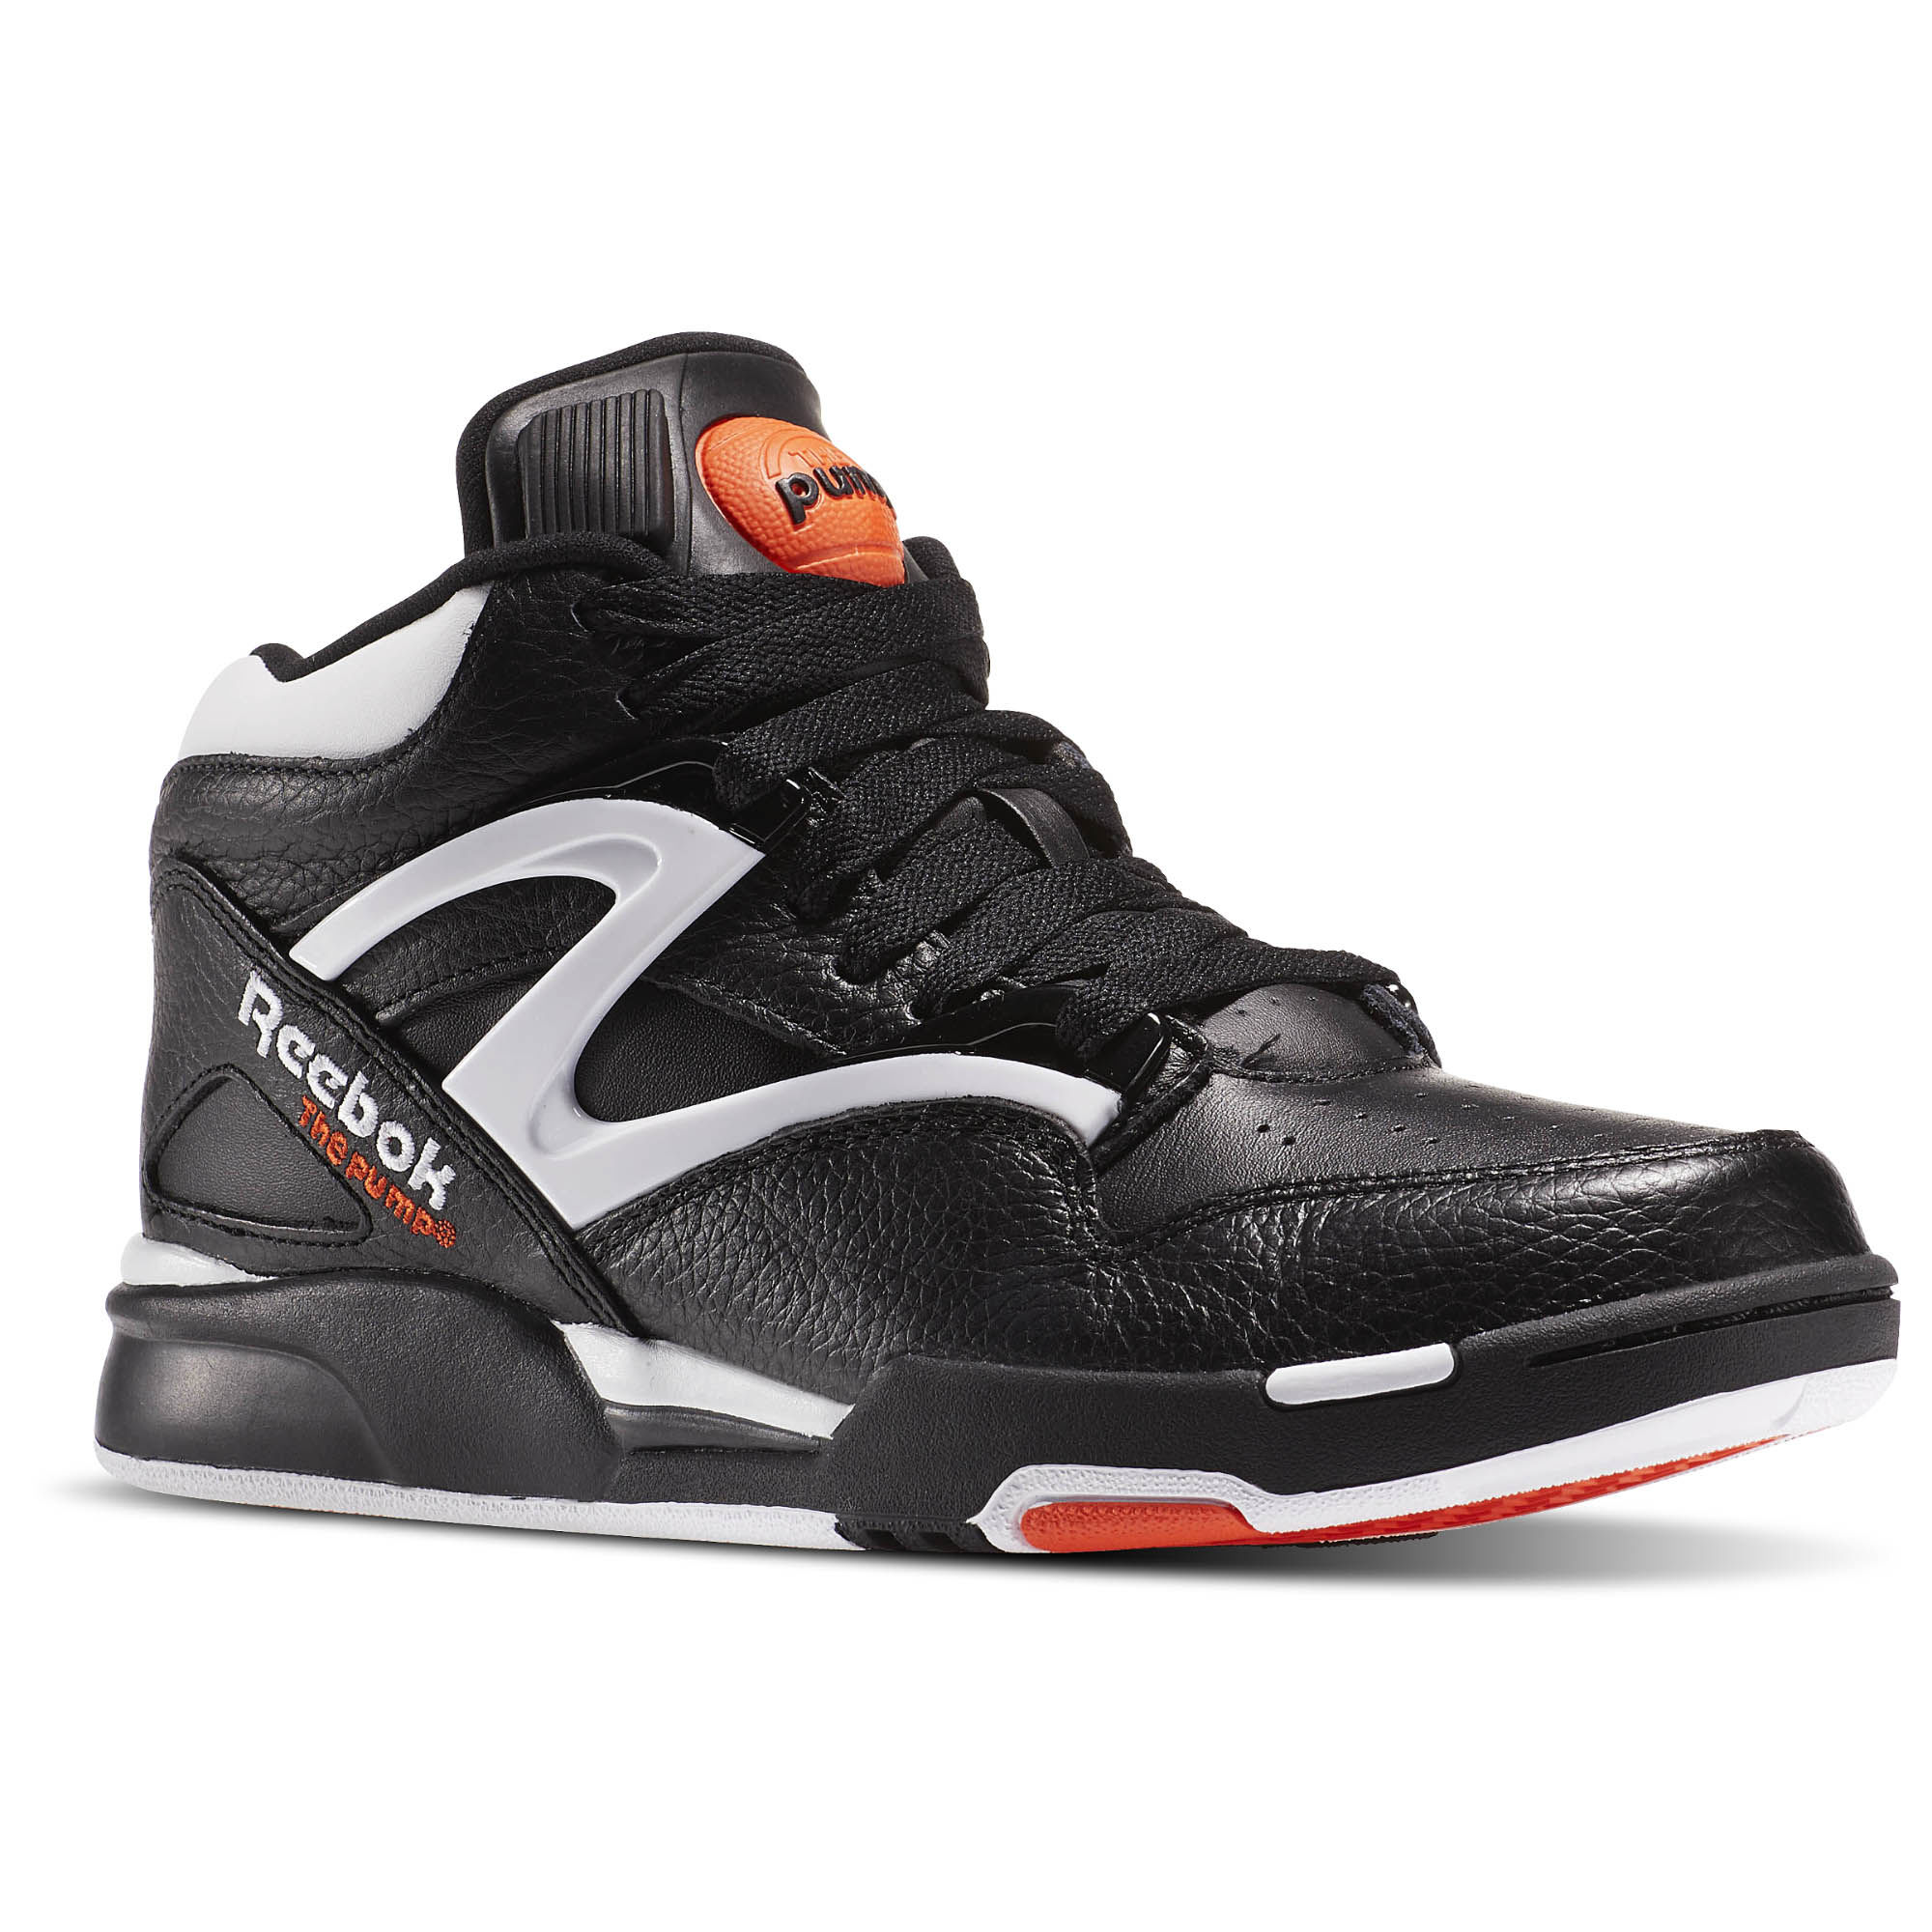 reebok shoes with pump